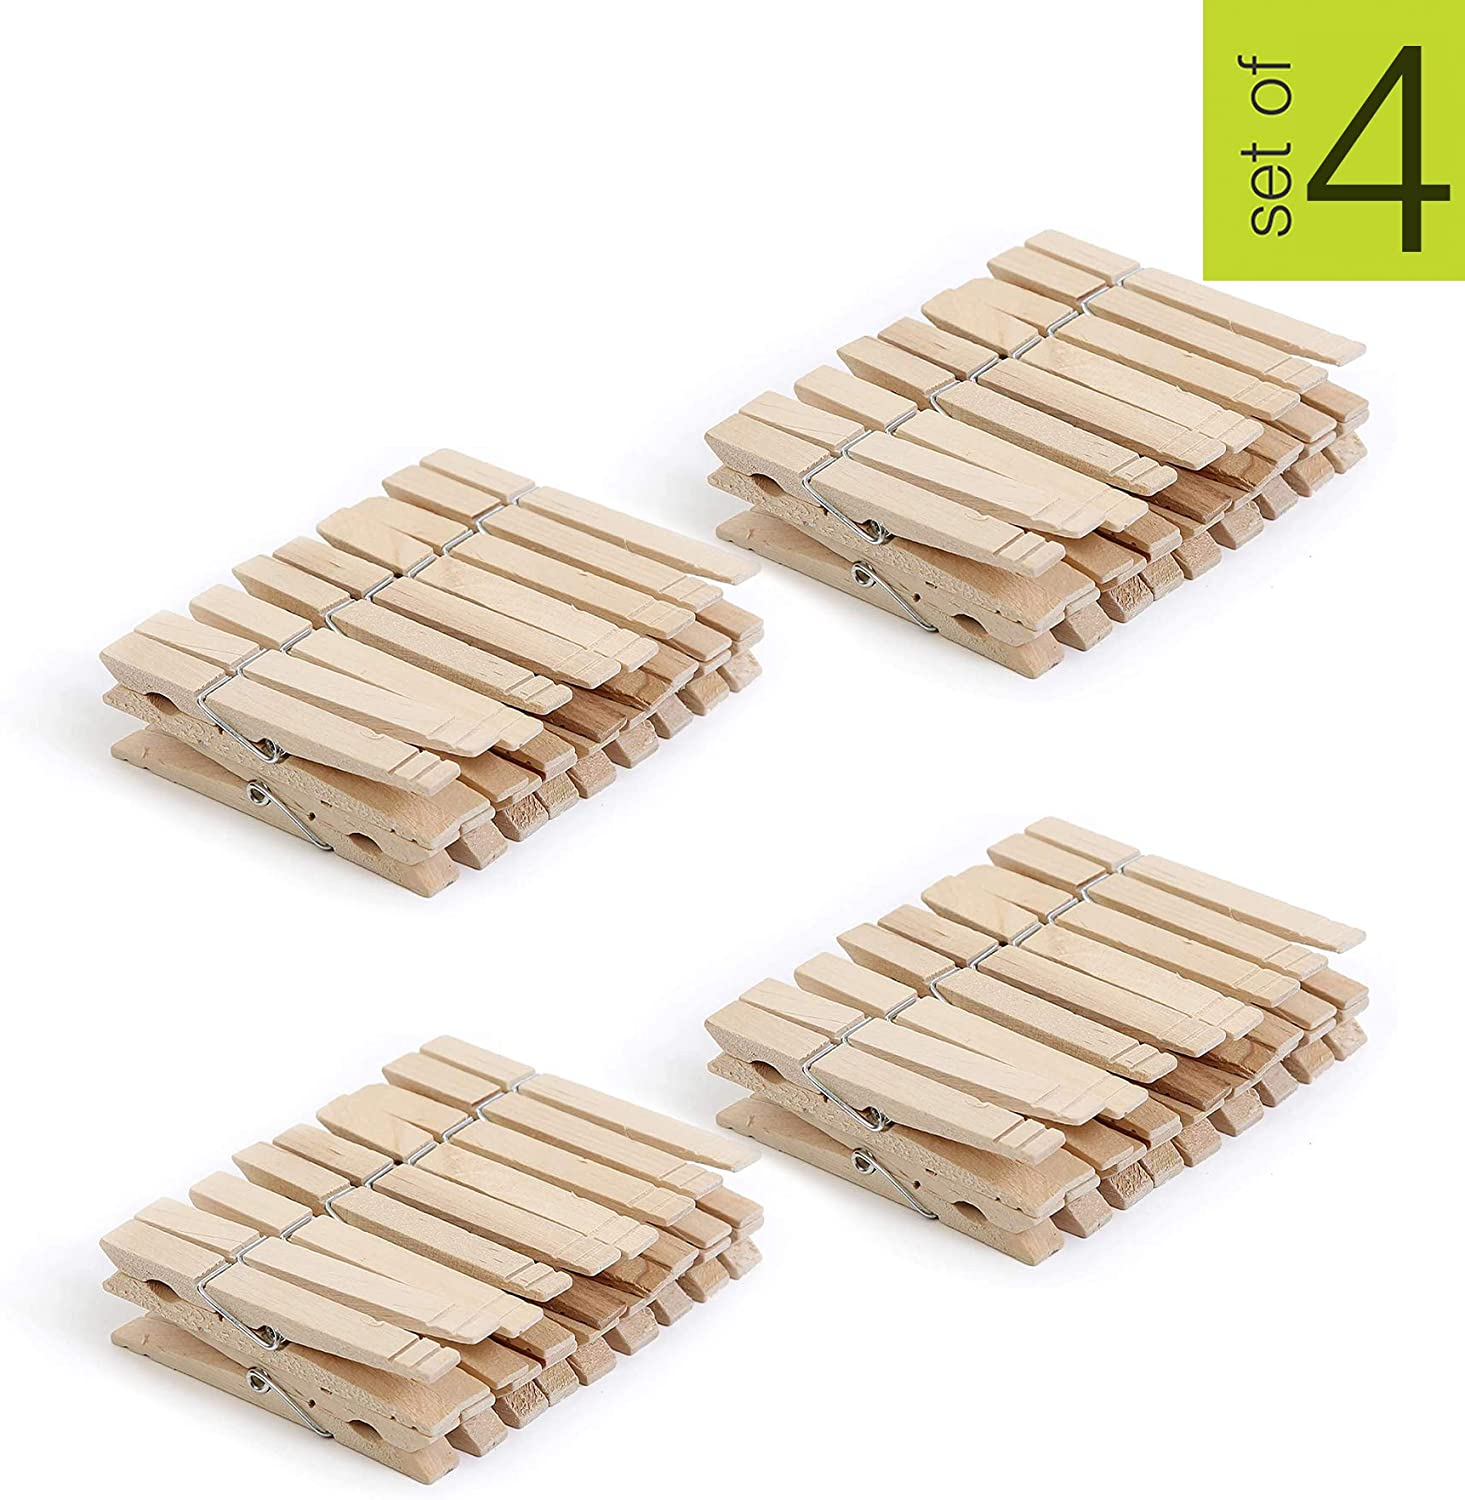 Smart Design 4-Coil Heavy Duty Wooden Clothespins - Non Staining Hardwood Peg Pins - Close Wire Springs - Drying, Hanging, Clothes, Laundry & Linens - Home (3.3 x 0.8 Inch) (108 Pack)